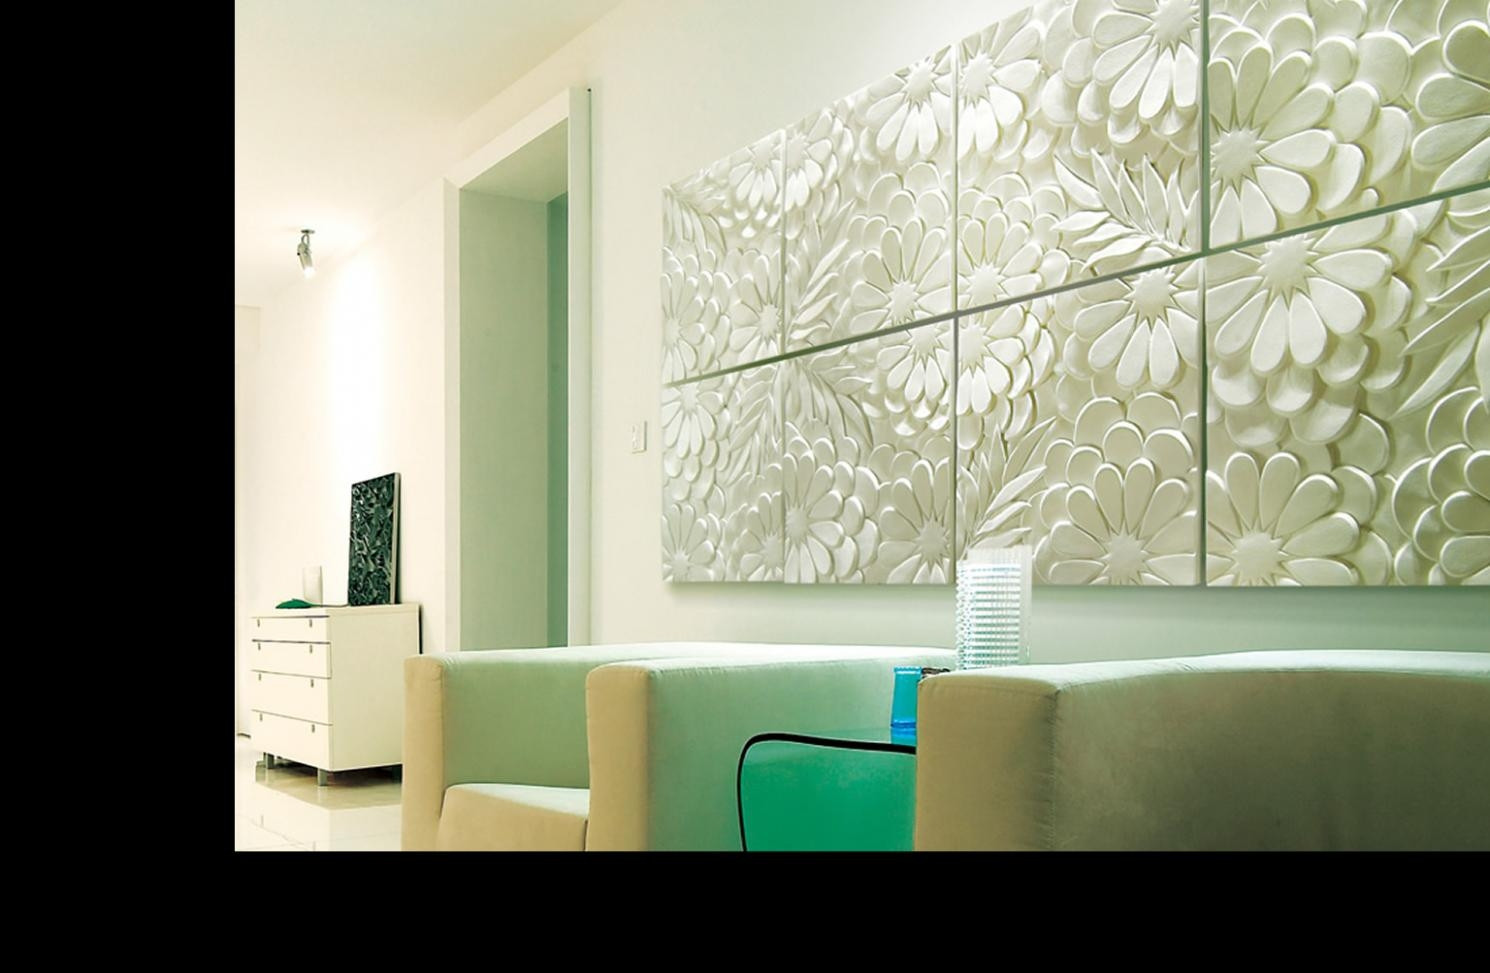 Best ideas about 3D Wall Art . Save or Pin 25 Collection of 3D Wall Art Now.